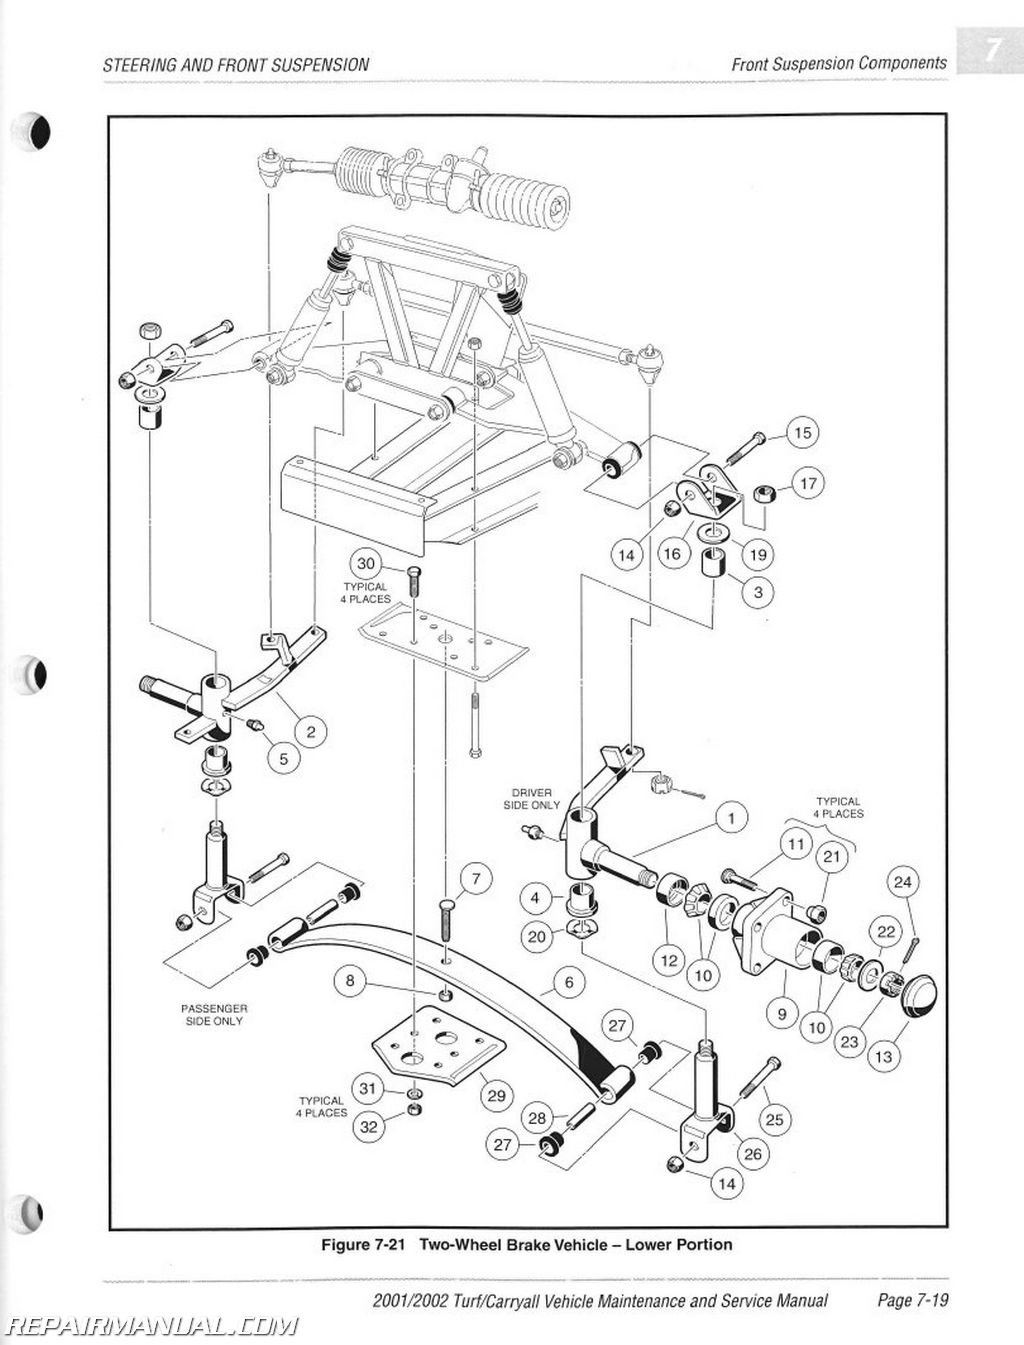 small resolution of club car carryall parts diagram wiring diagram m6 club car carryall 6 parts diagram carryall 2